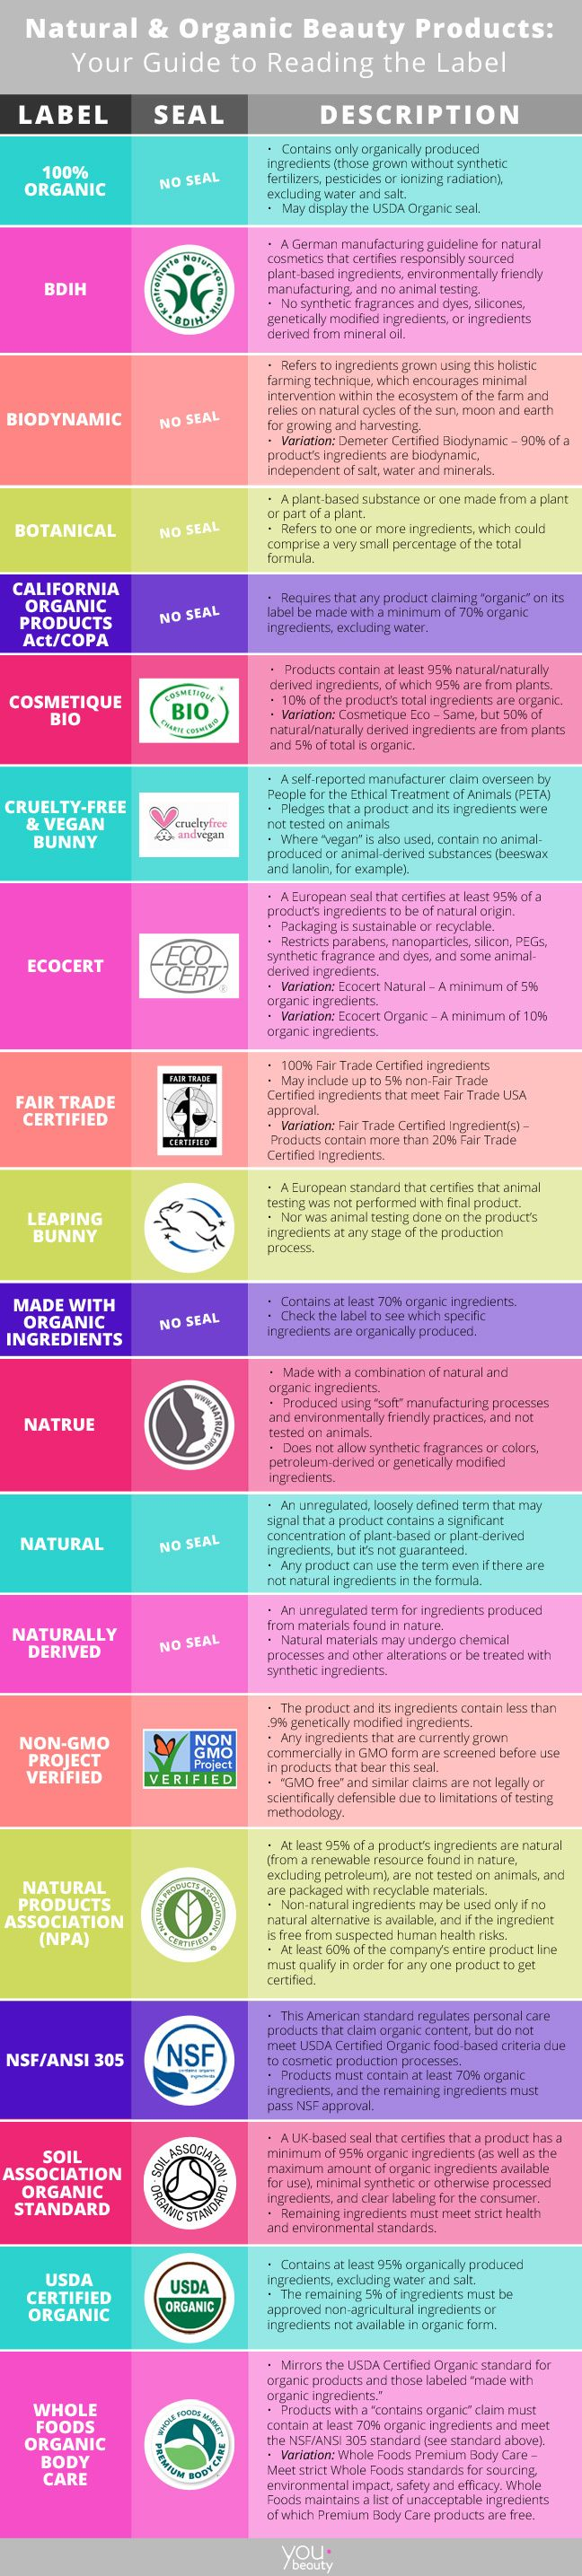 Your Foolproof Guide to Decoding Beauty Ingredient Labels forecasting